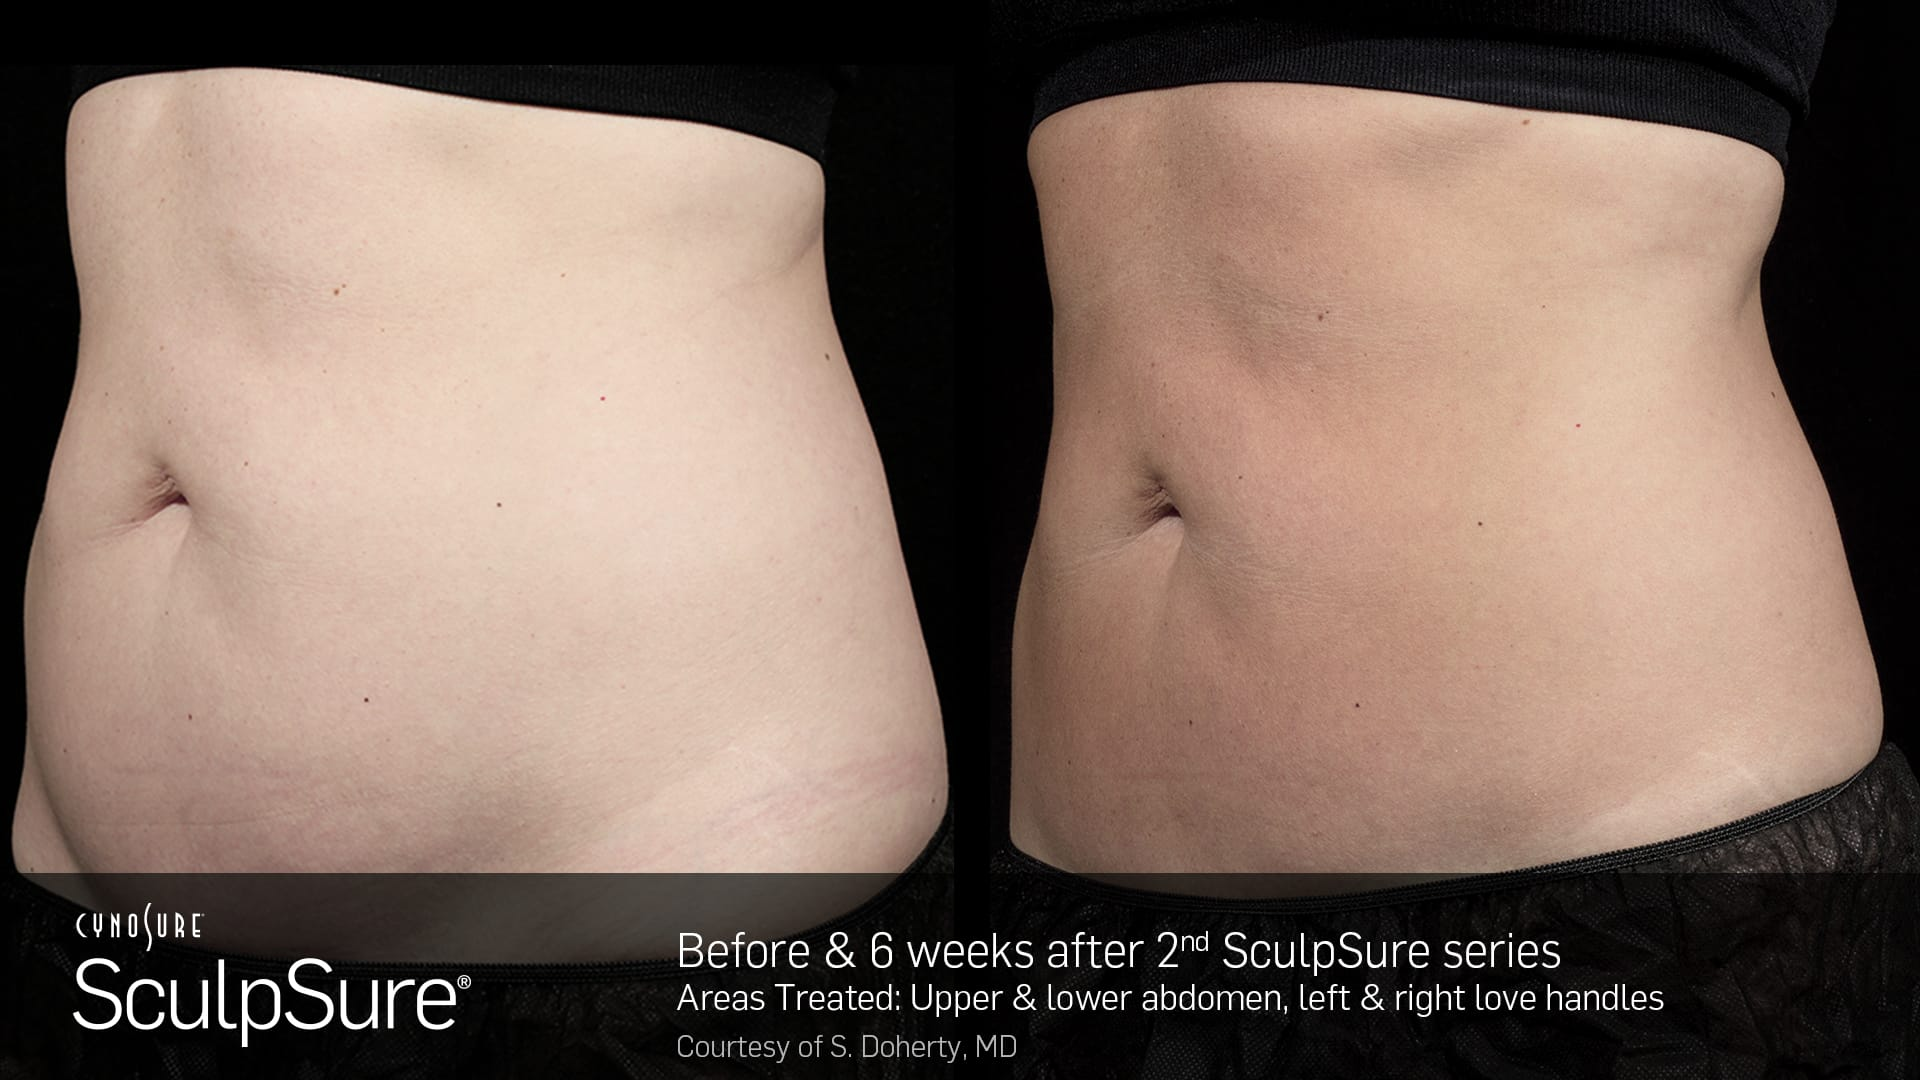 Before and after SculpSure results